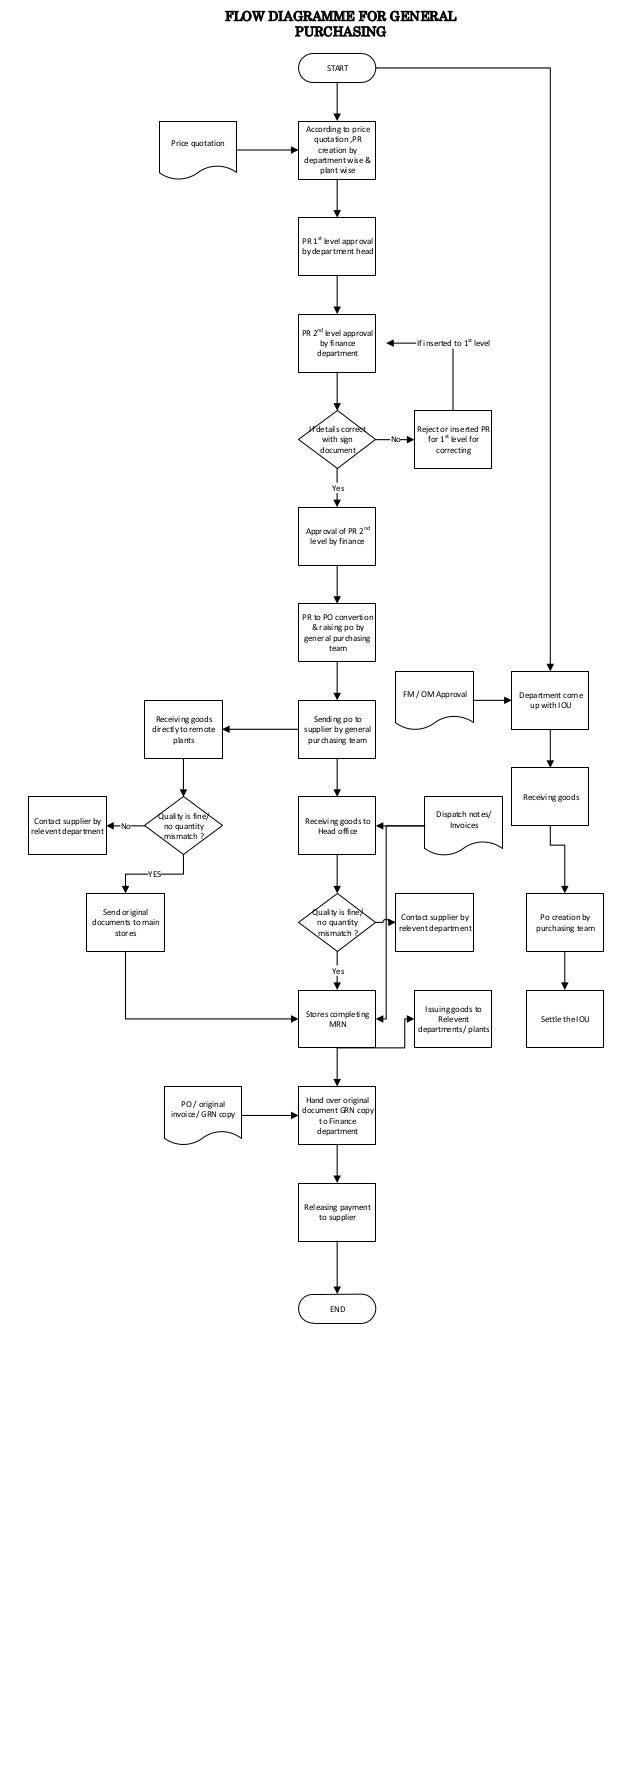 Flow diagramme for genal purchase po process